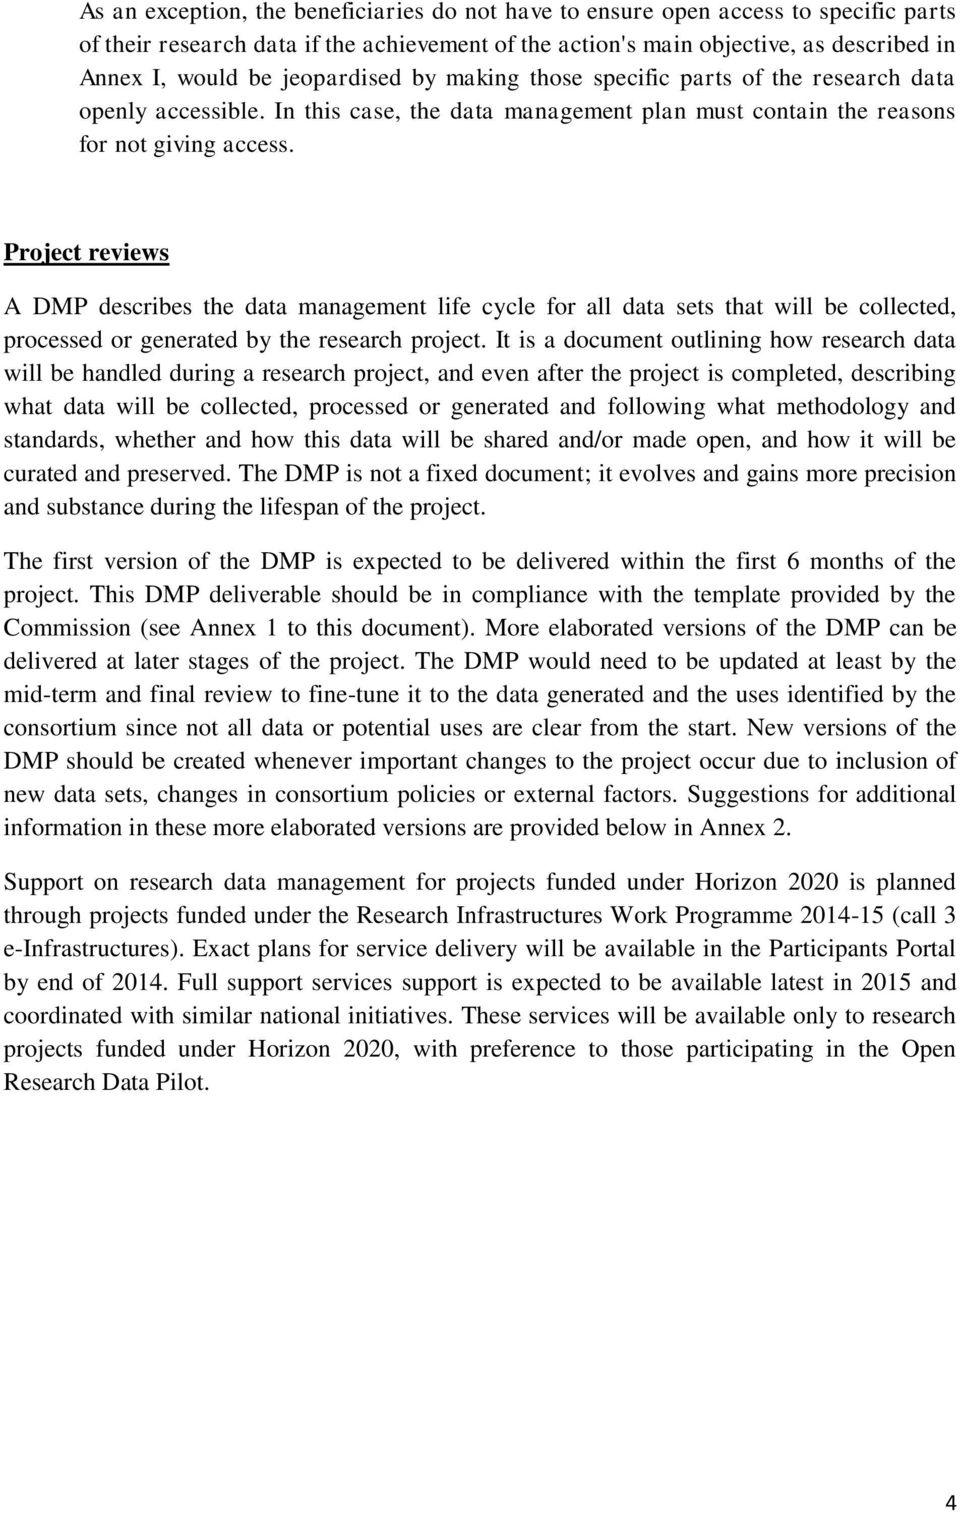 Project reviews A DMP describes the data management life cycle for all data sets that will be collected, processed or generated by the research project.